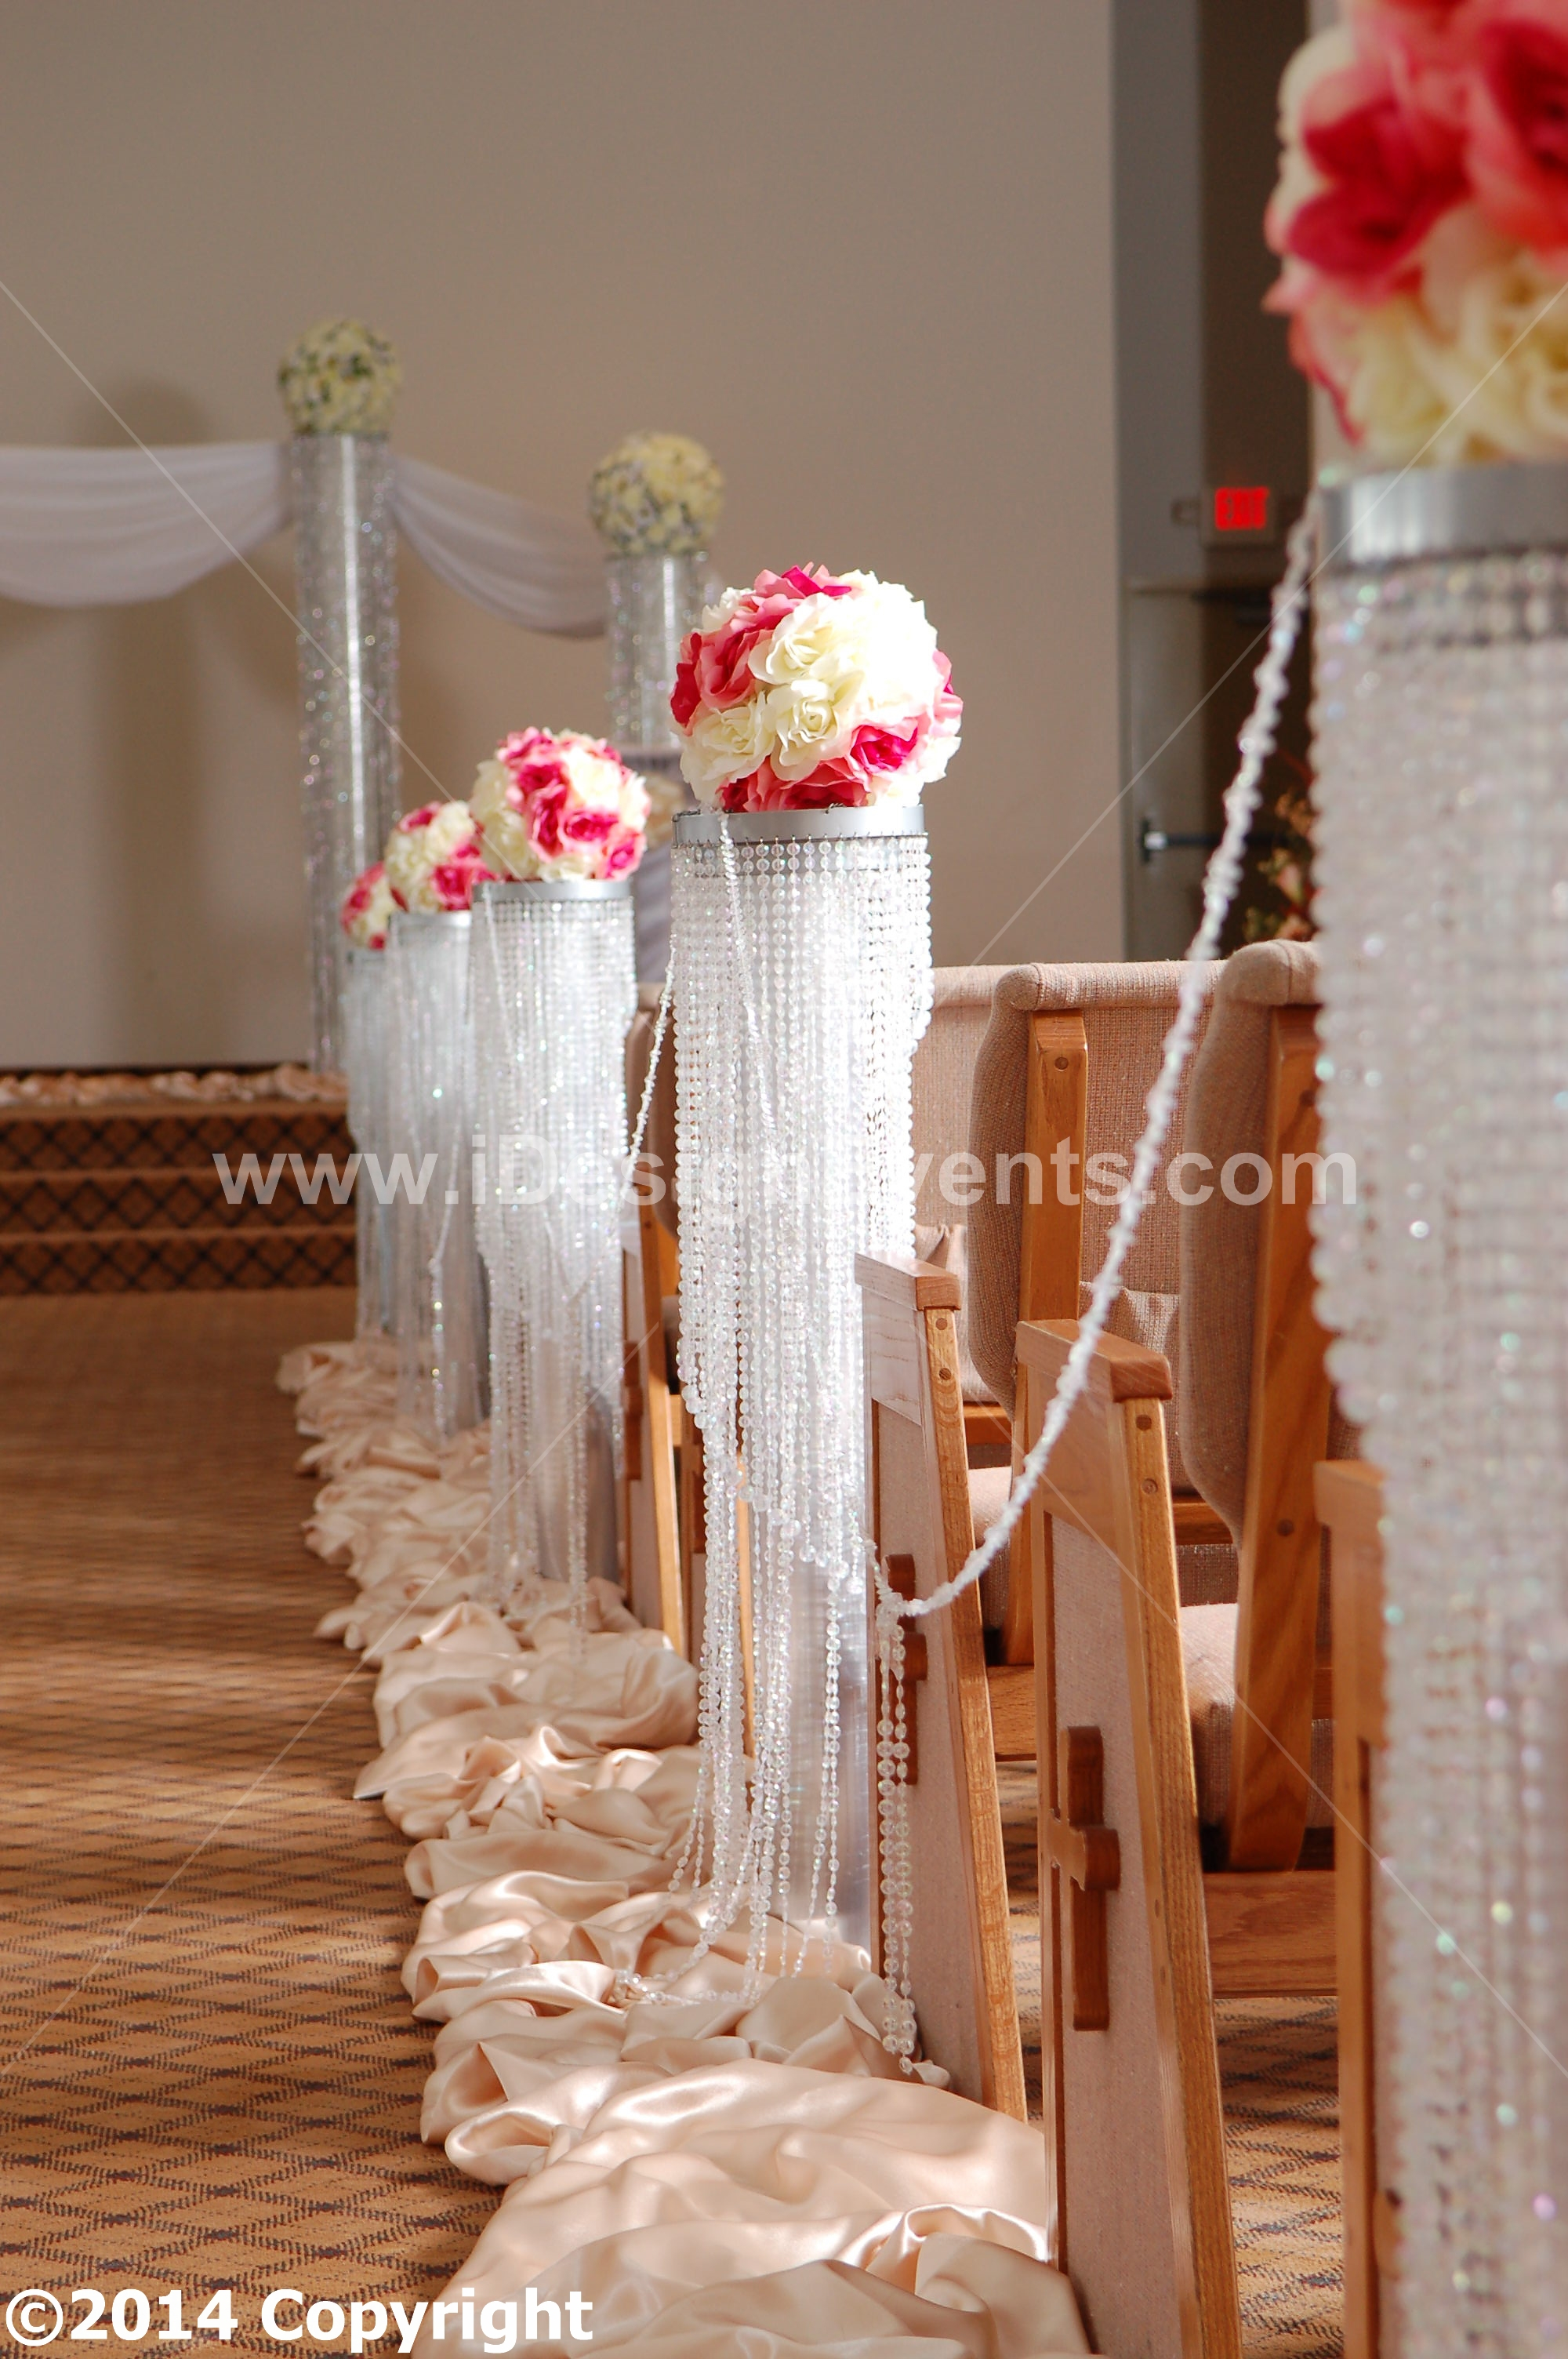 3 feet iride rd scent wedding aisle decoration crystal pillars pedestals columns. Black Bedroom Furniture Sets. Home Design Ideas